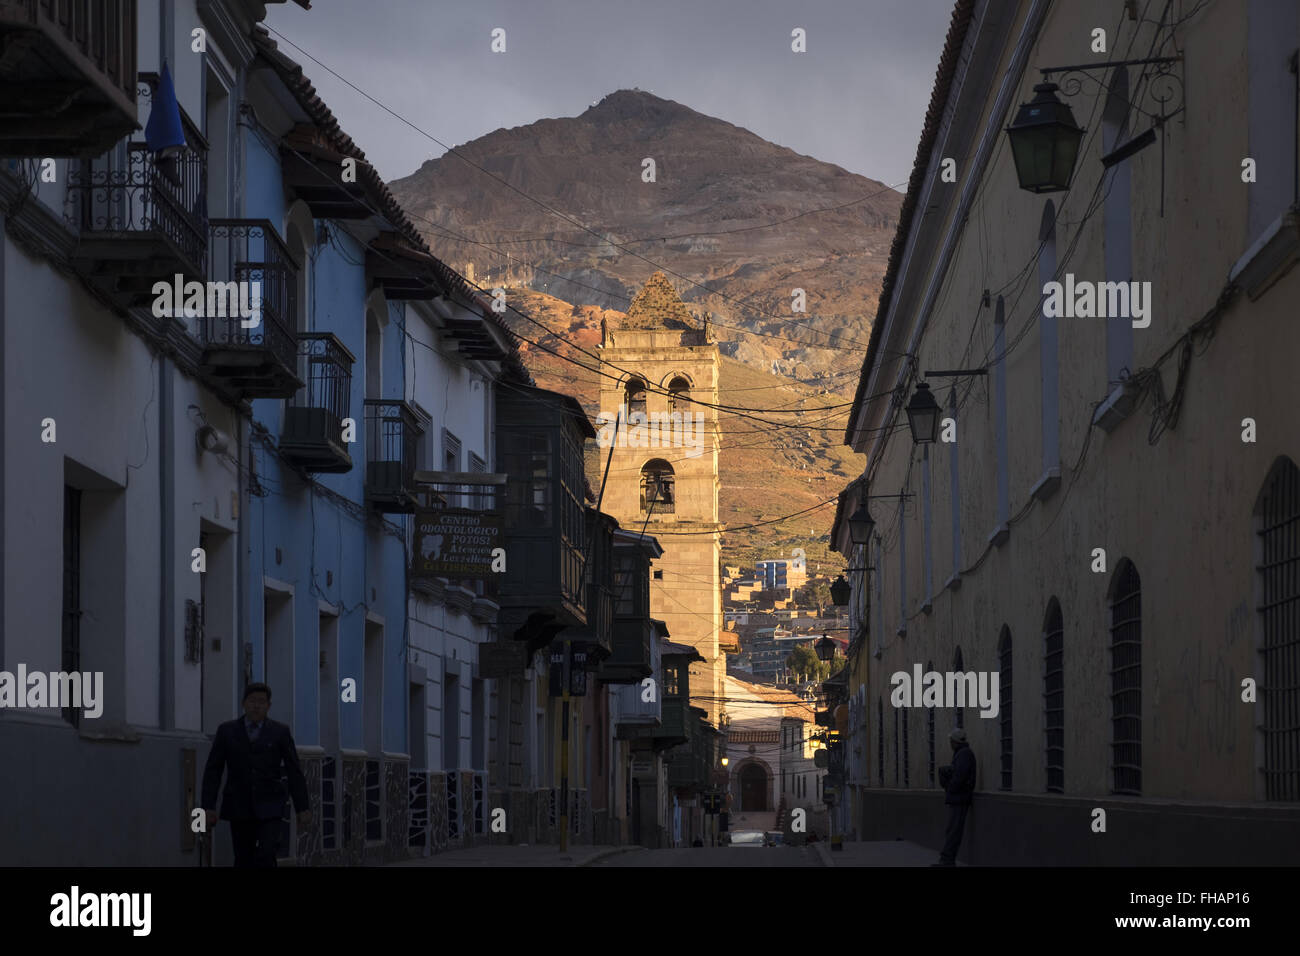 View of the famous mountain Cerro Rico over the city of Potosi - Stock Image